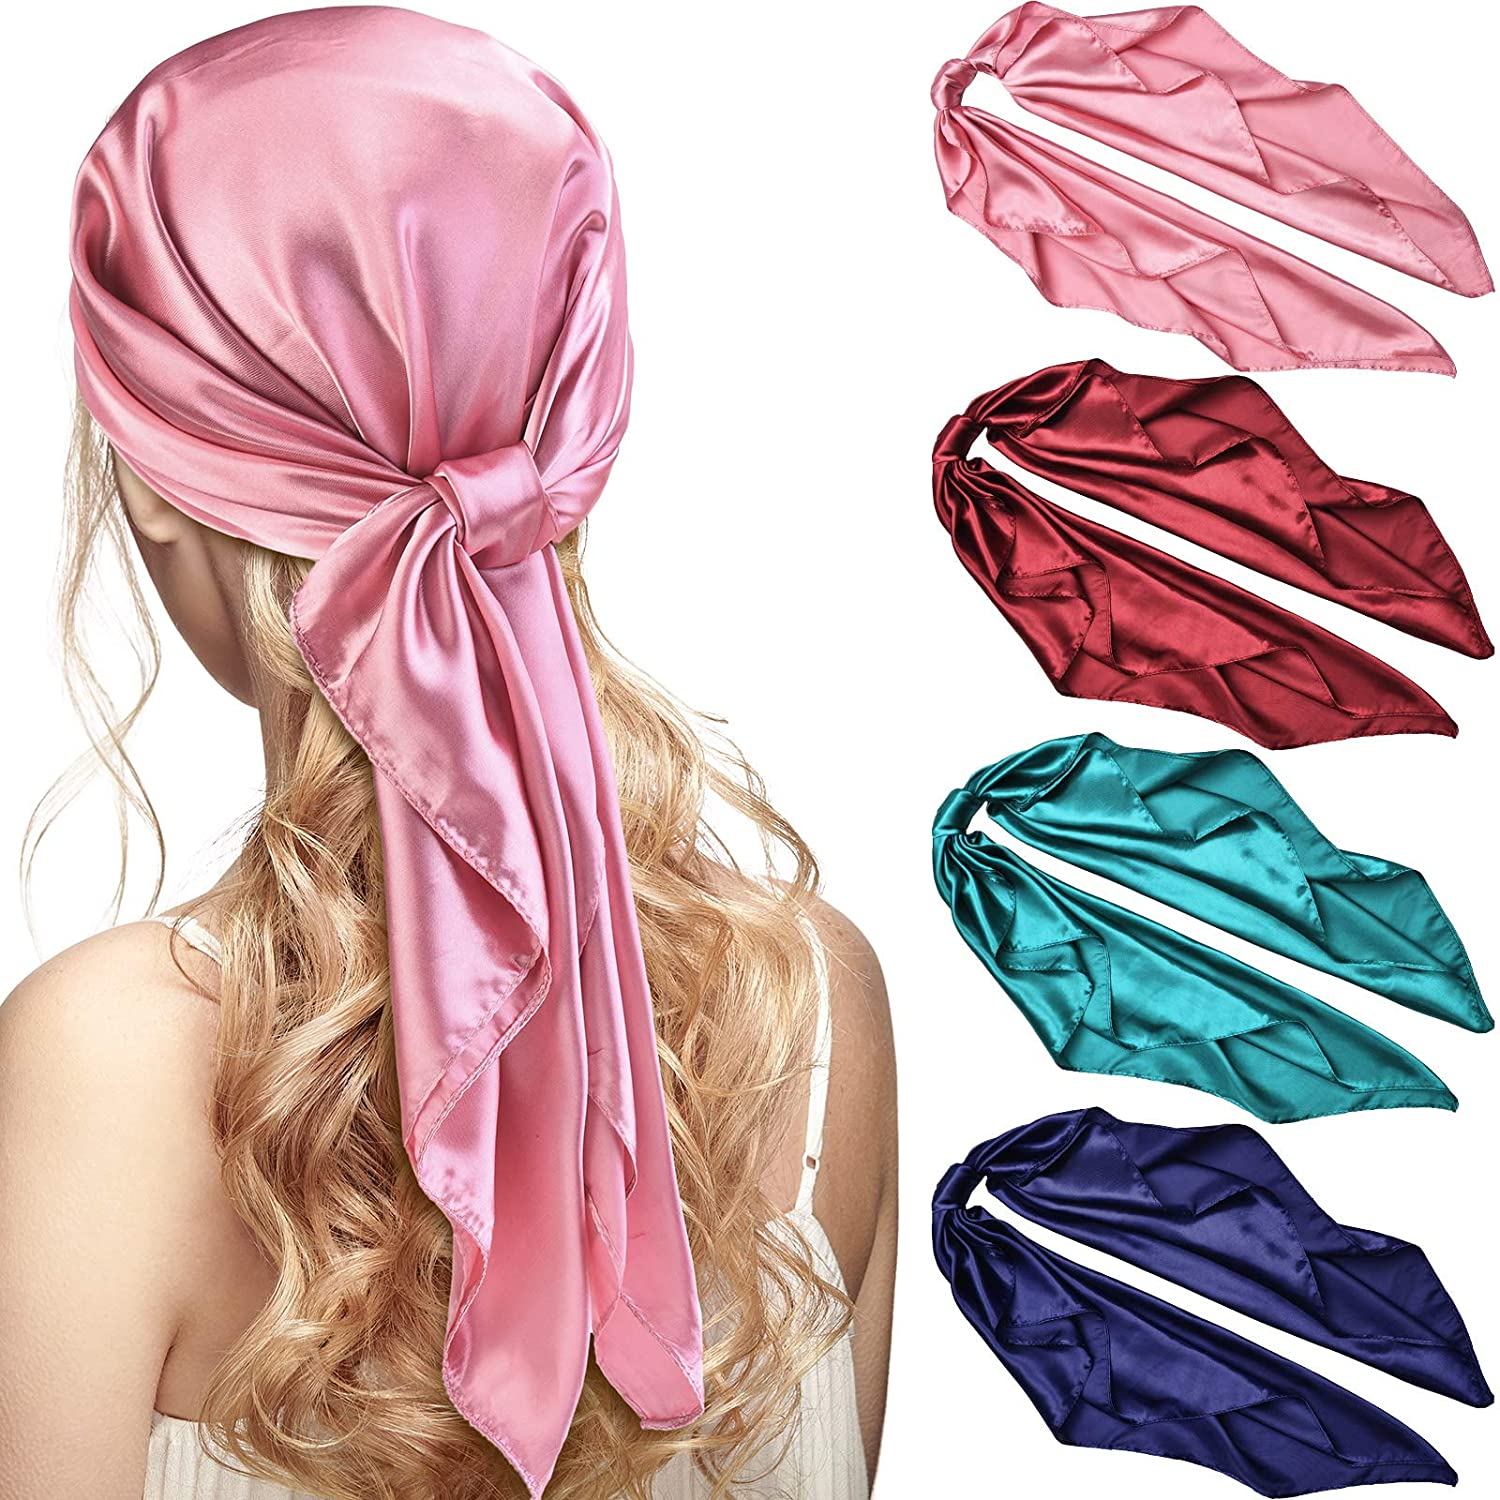 4 Pieces 35 Inch Satin Head Scarves Large Vintage Square Scarf Silk Feeling Satin Hair Wrapping Scarves for Women Girls (Navy Blue, Wine Red, Skin Pink, Blue)